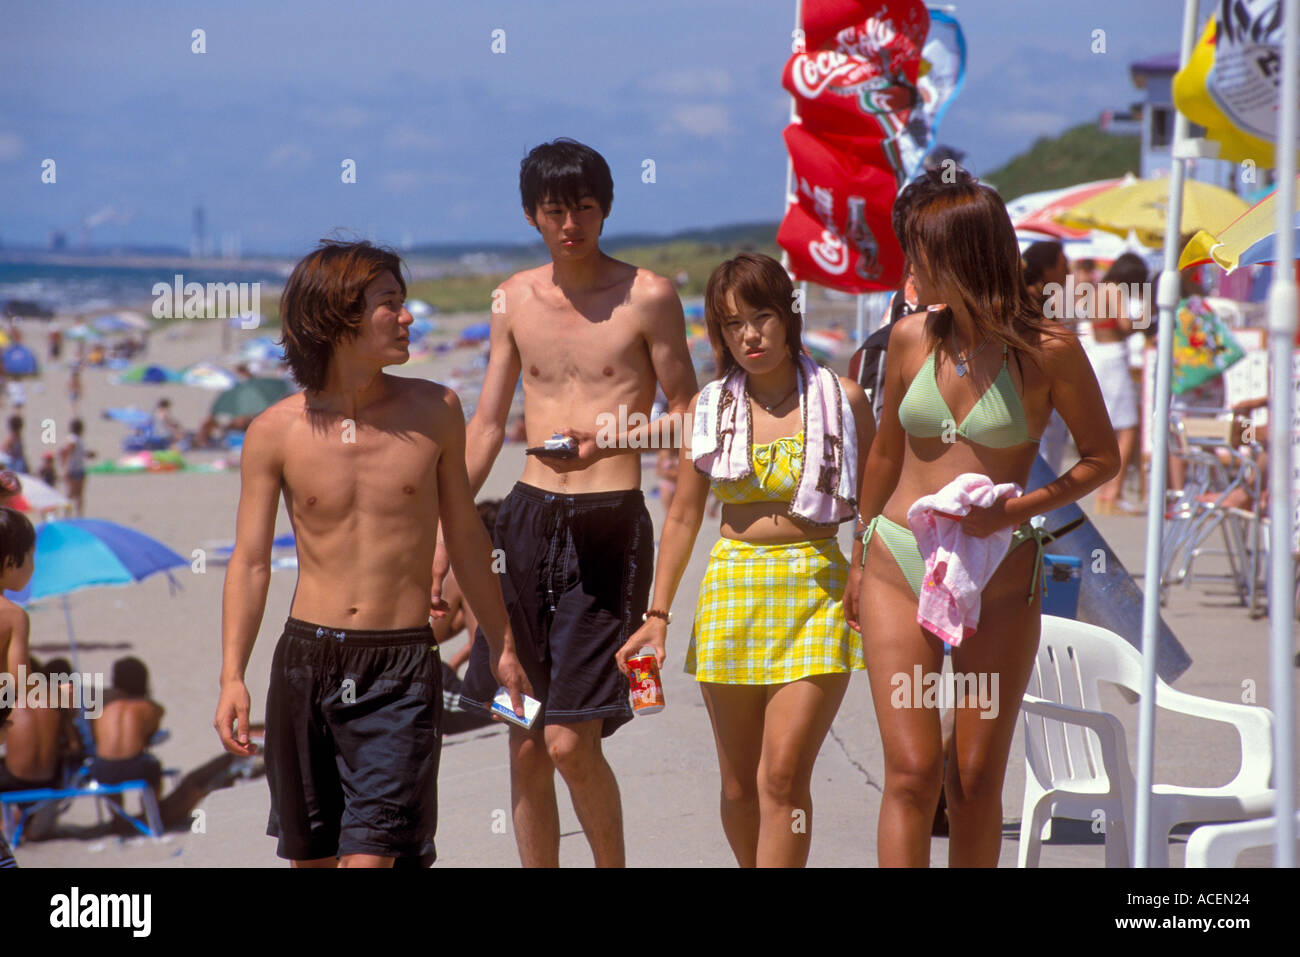 Two couples wearing swimsuits walk along the beach at the Sea of Japan Stock Photo